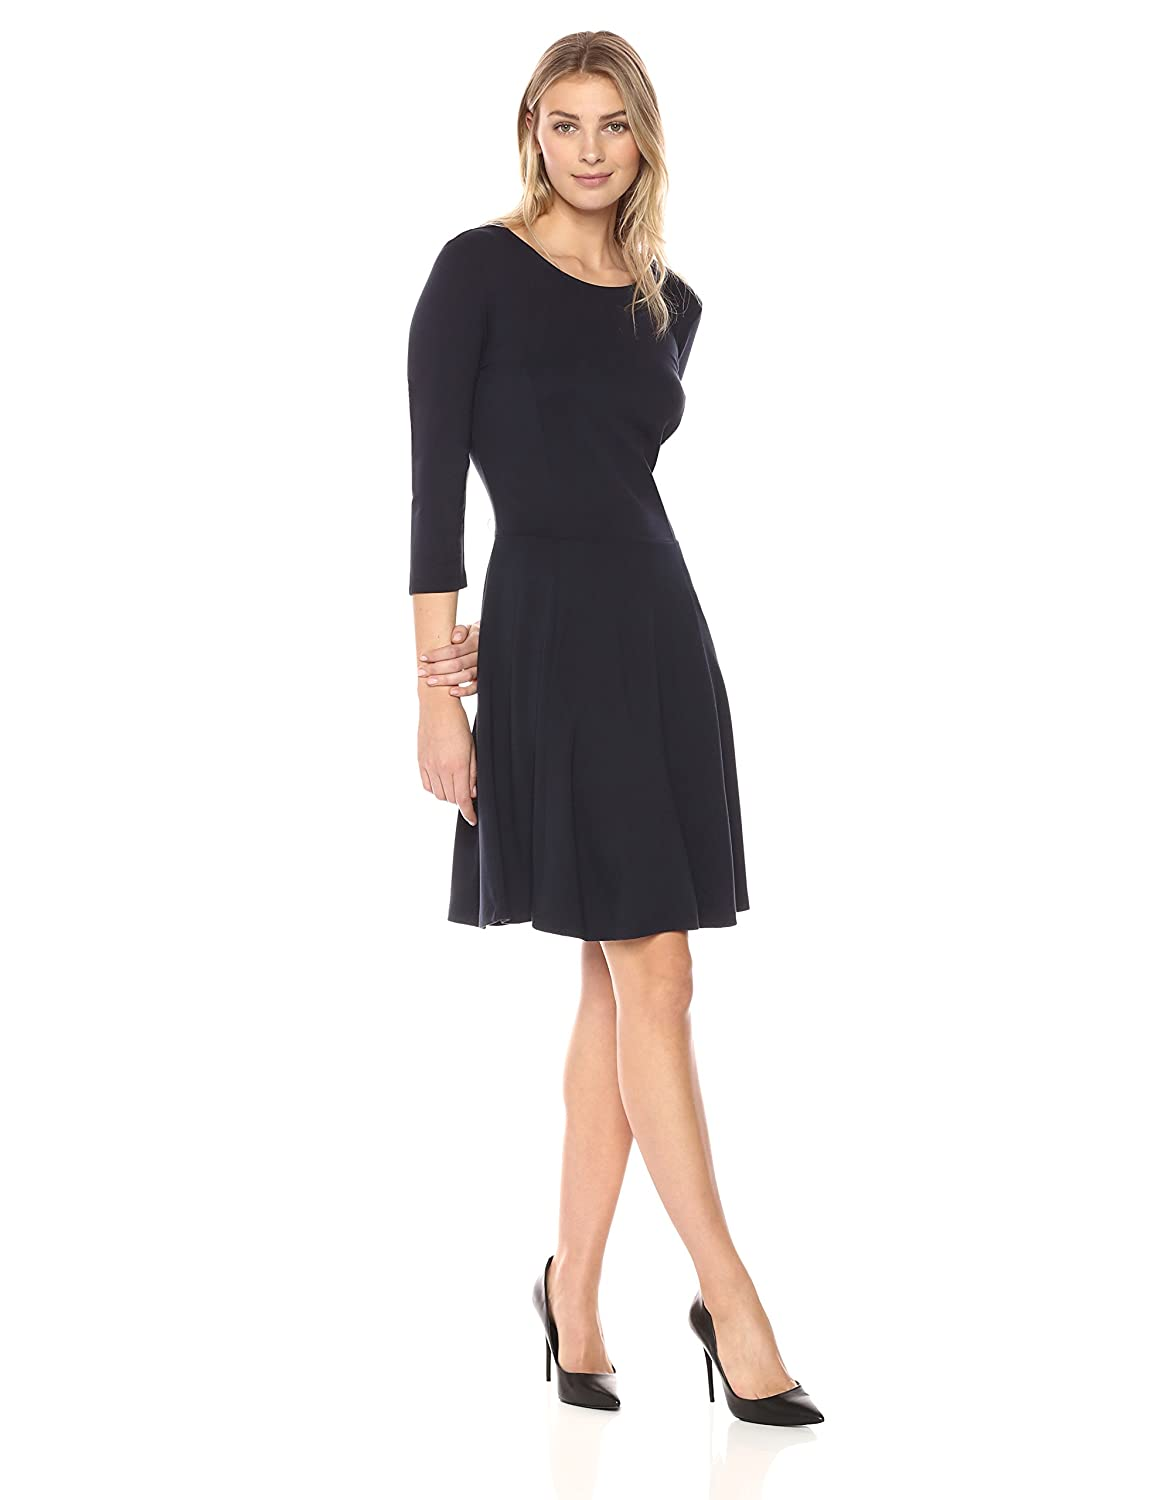 Lark & Ro Women's 3/4 Sleeve Knit Fit and Flare Dress